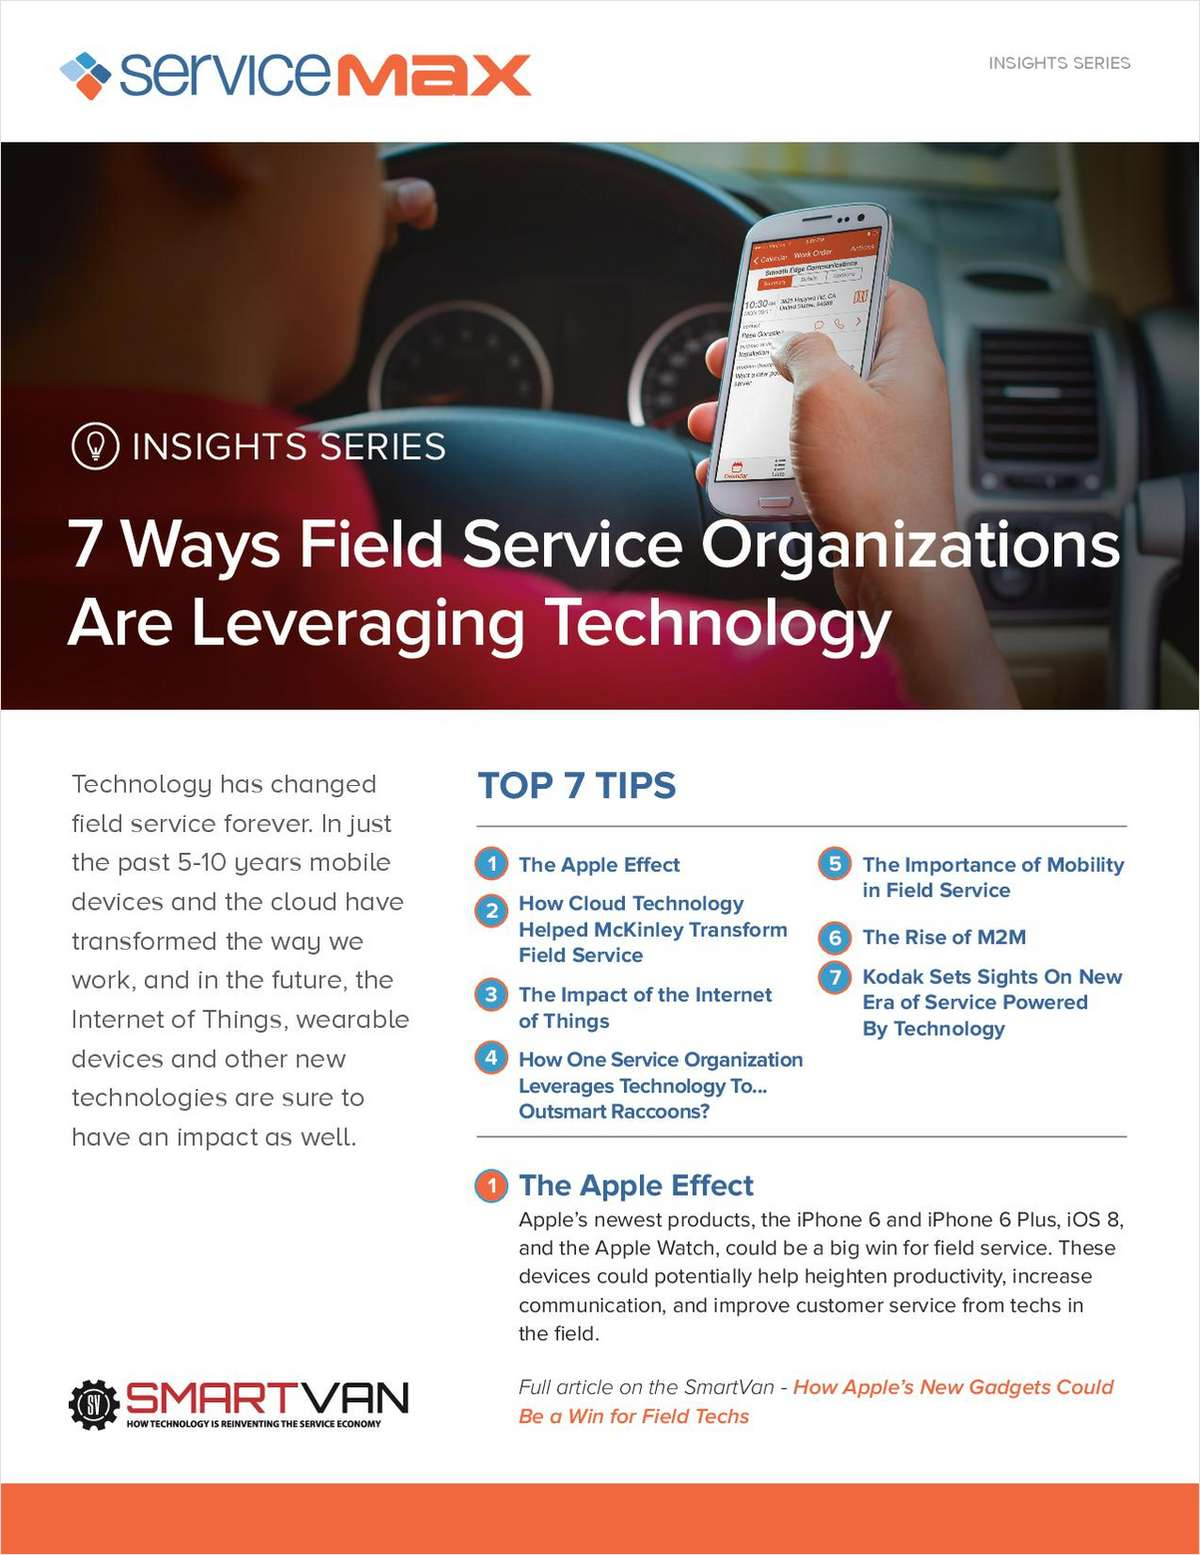 7 Ways Field Service Organizations are Leveraging Technology